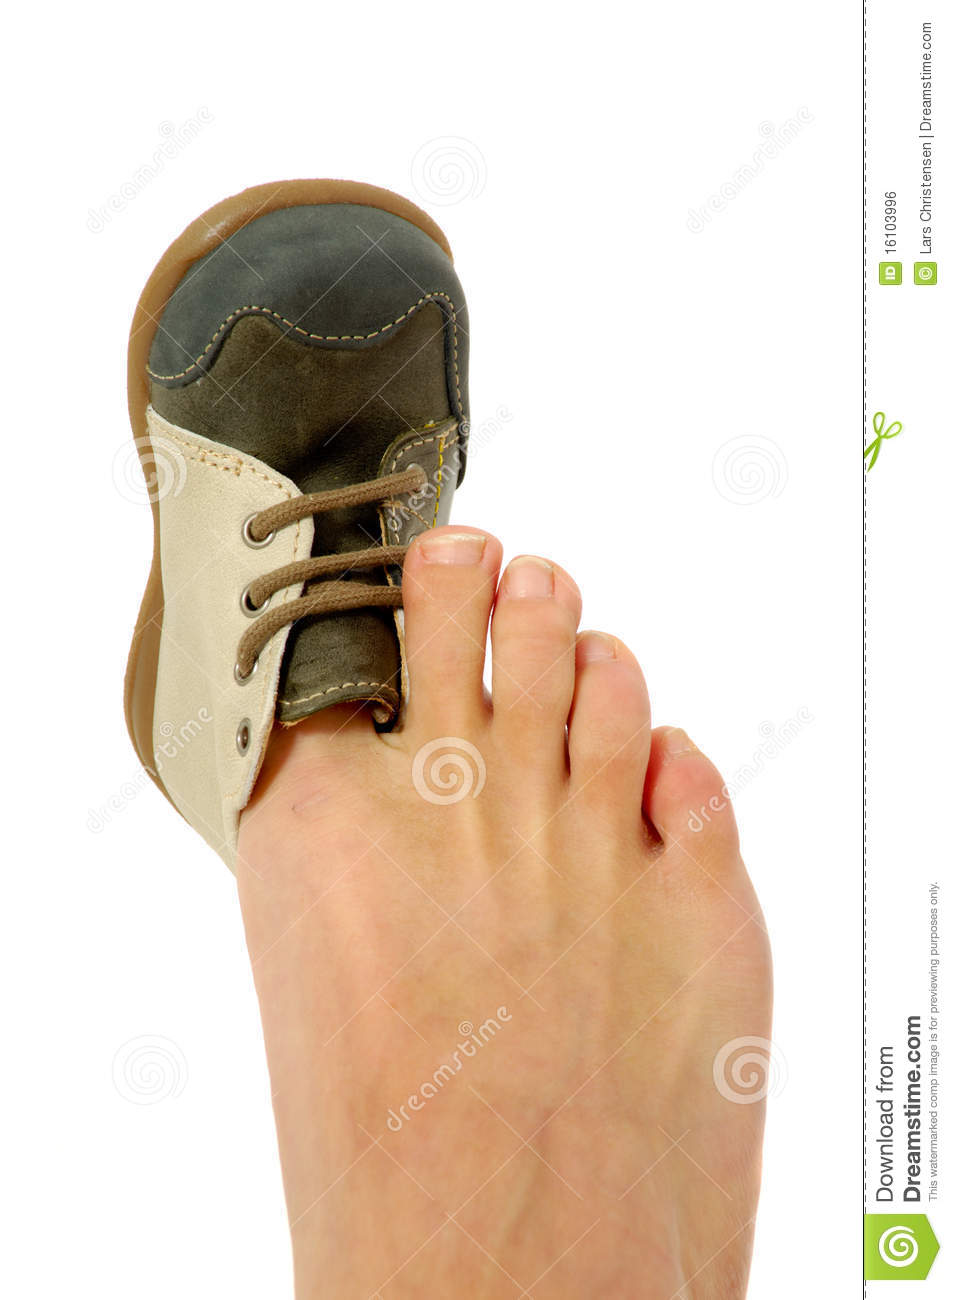 Feet clipart big and small Shoe foot Small clipart small